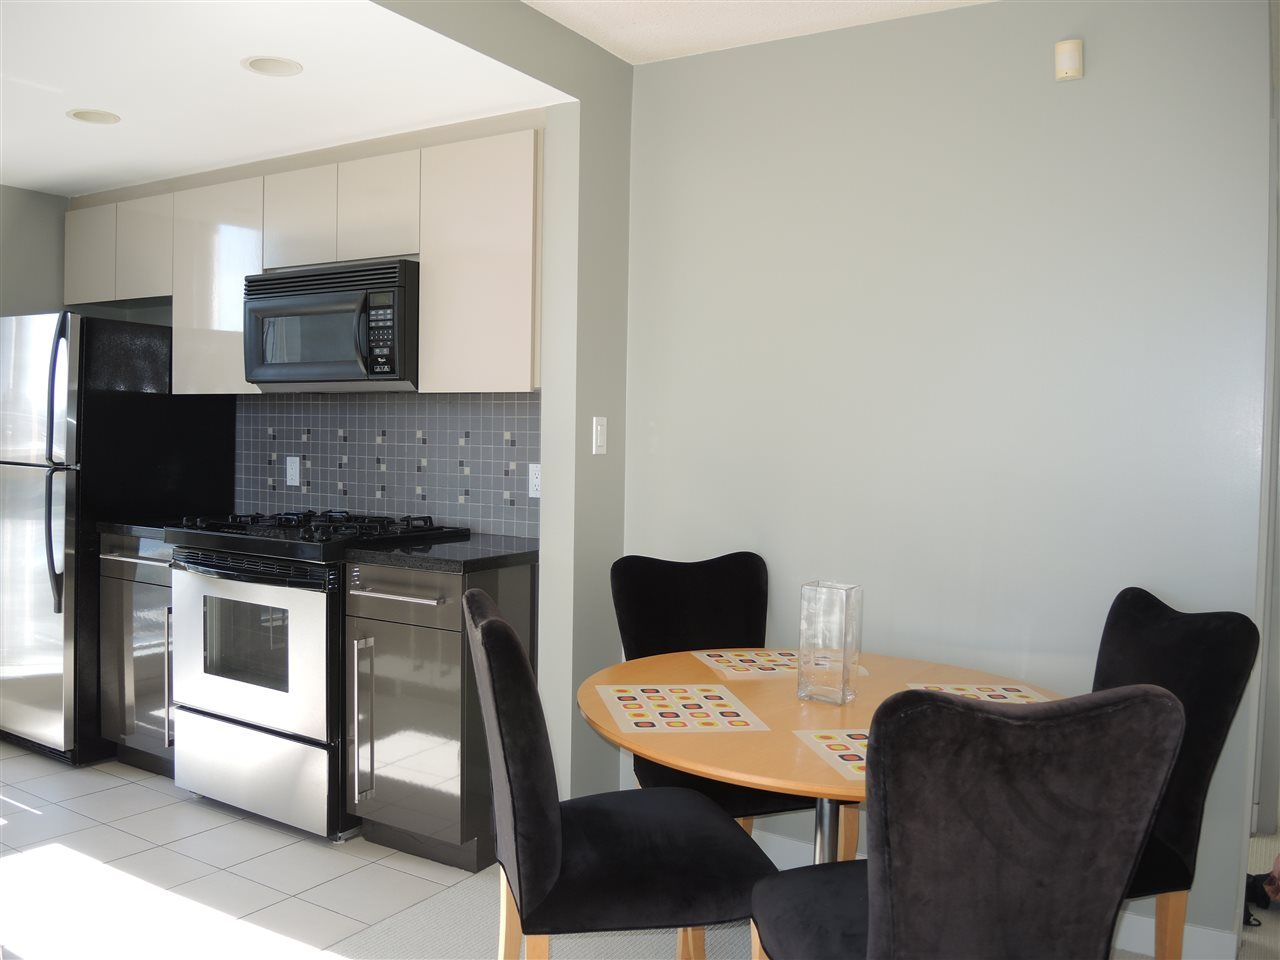 Photo 4: Photos: 902 1408 STRATHMORE MEWS in Vancouver: Yaletown Condo for sale (Vancouver West)  : MLS®# R2011692